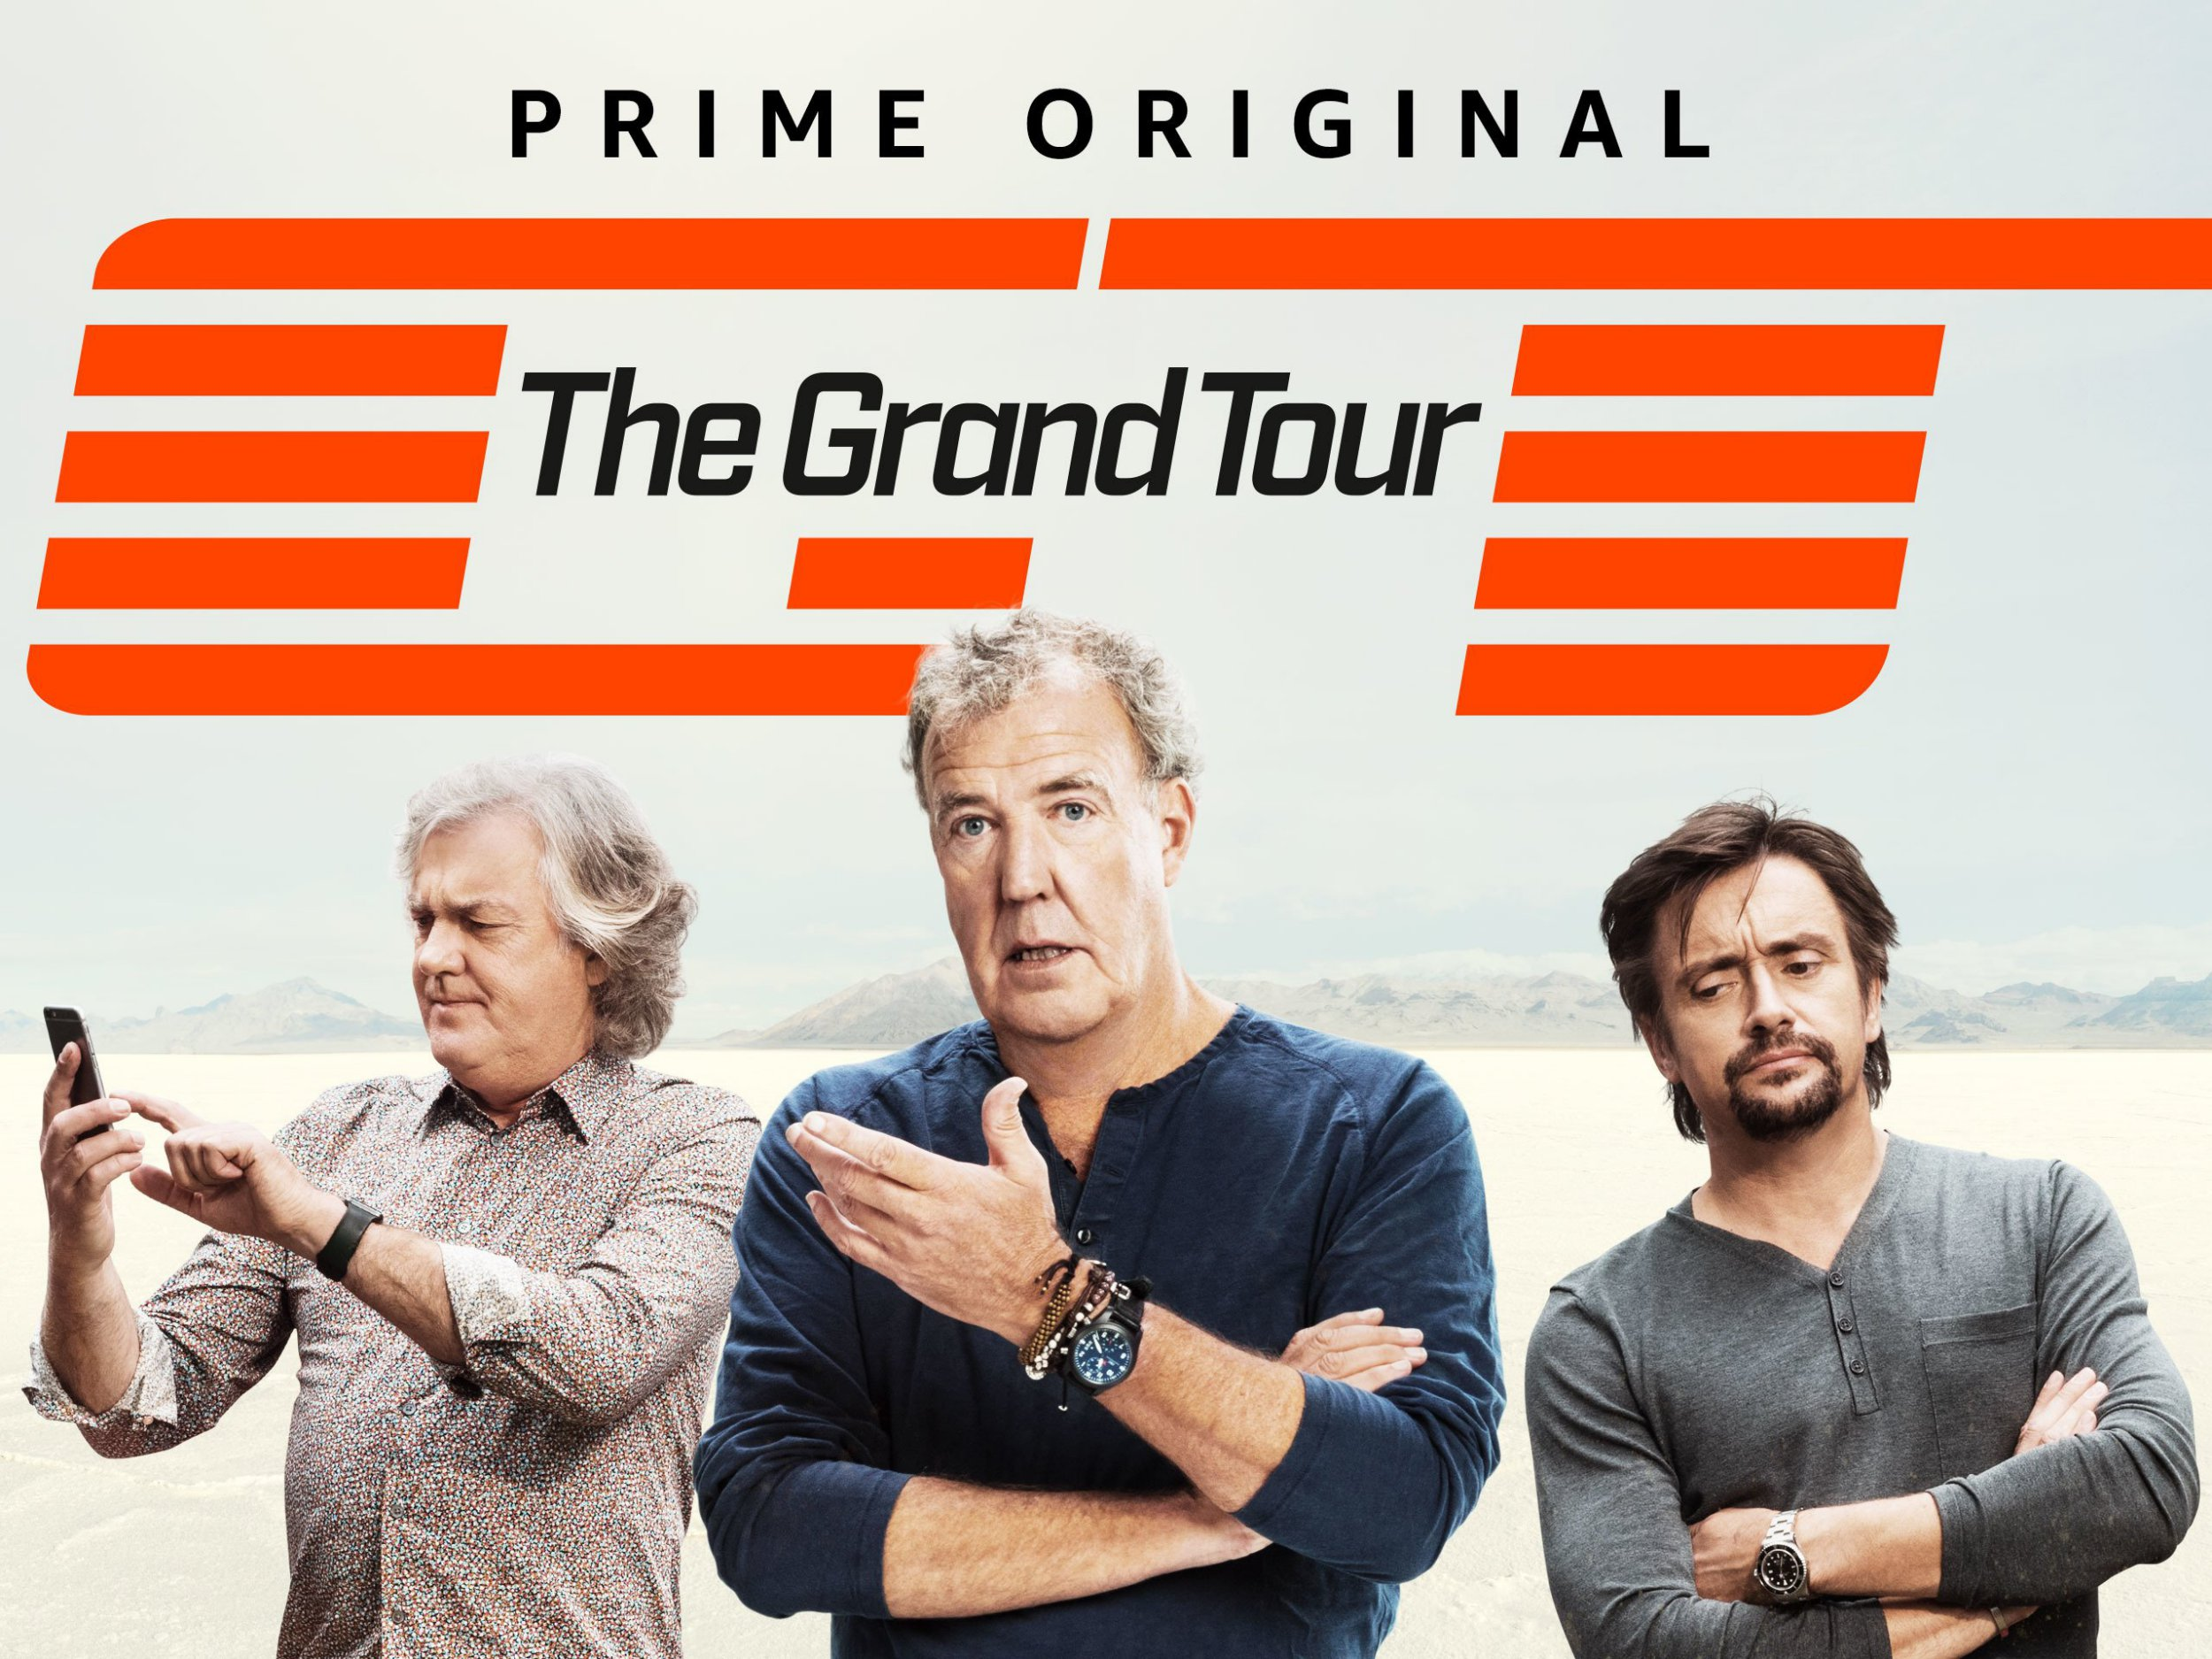 Aberdeen Uni hit back at The Grand Tour after Jeremy Clarkson and co compare car to The Human Centipede Provider: Amazon Prime Source: https://www.energyvoice.com/otherenergy/196166/the-grand-tour-mocks-aberdeen-electric-vehicle-project/